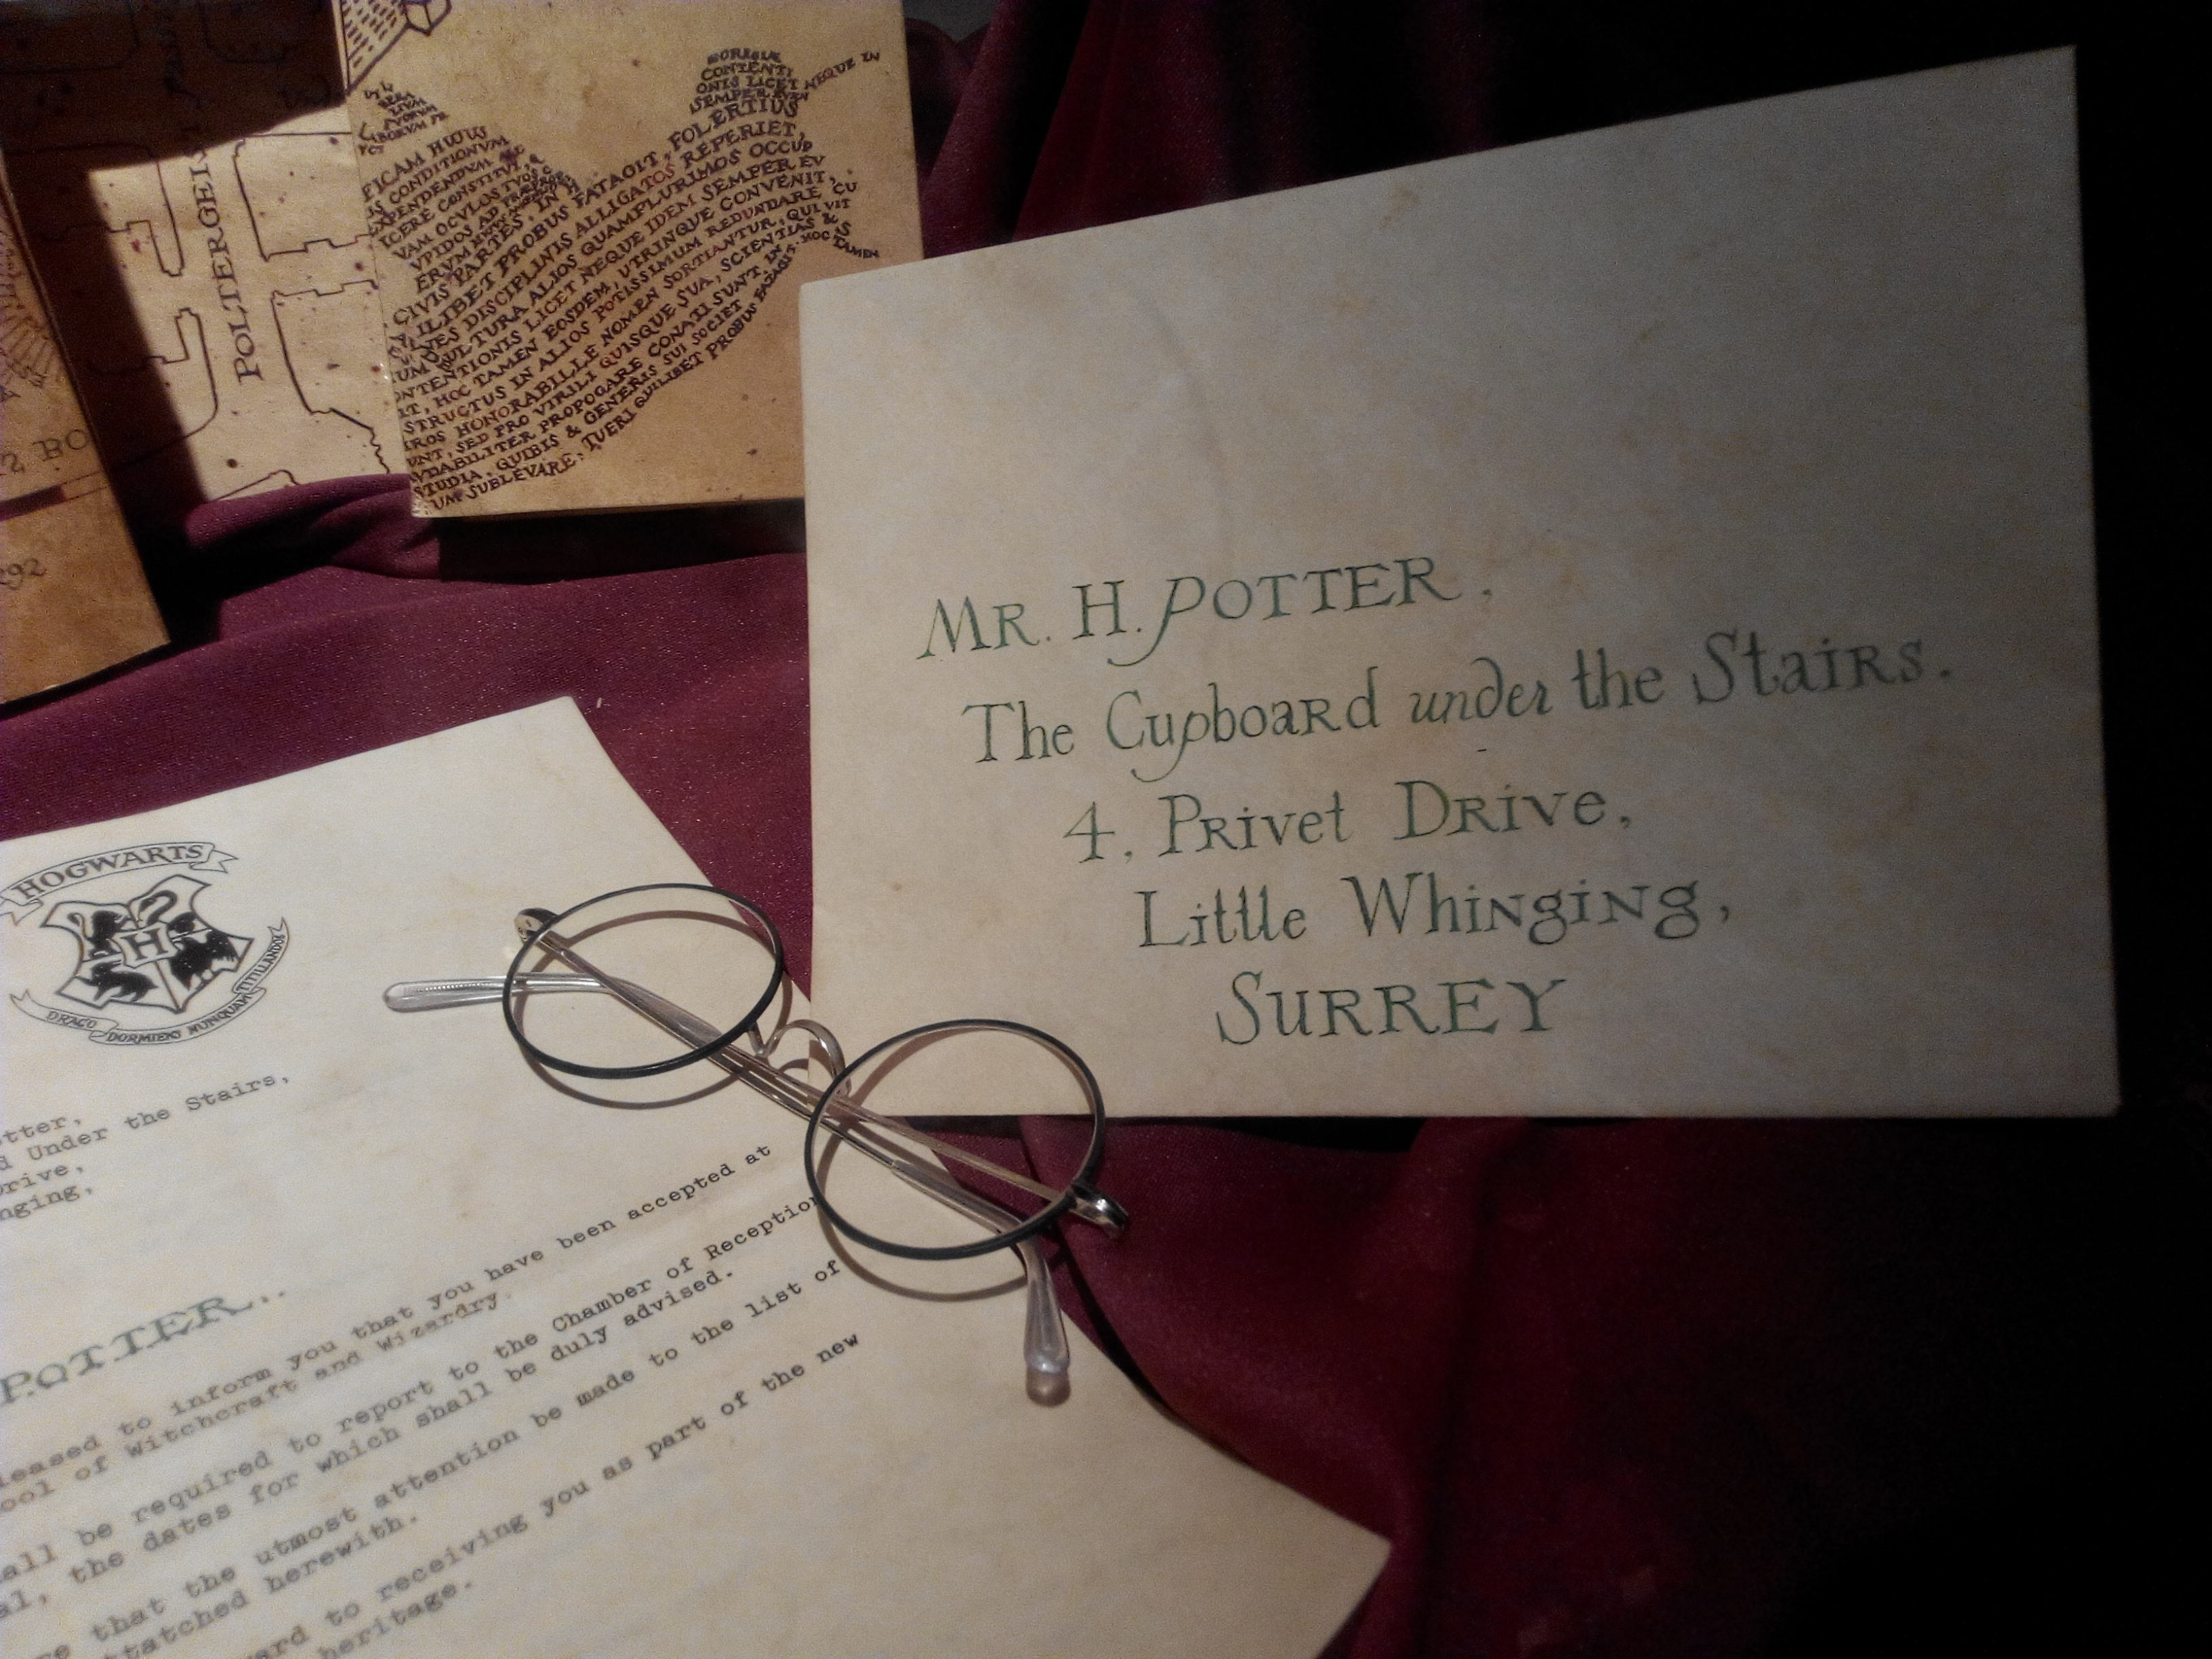 Harry Potter acceptance letter, glasses, and envelope